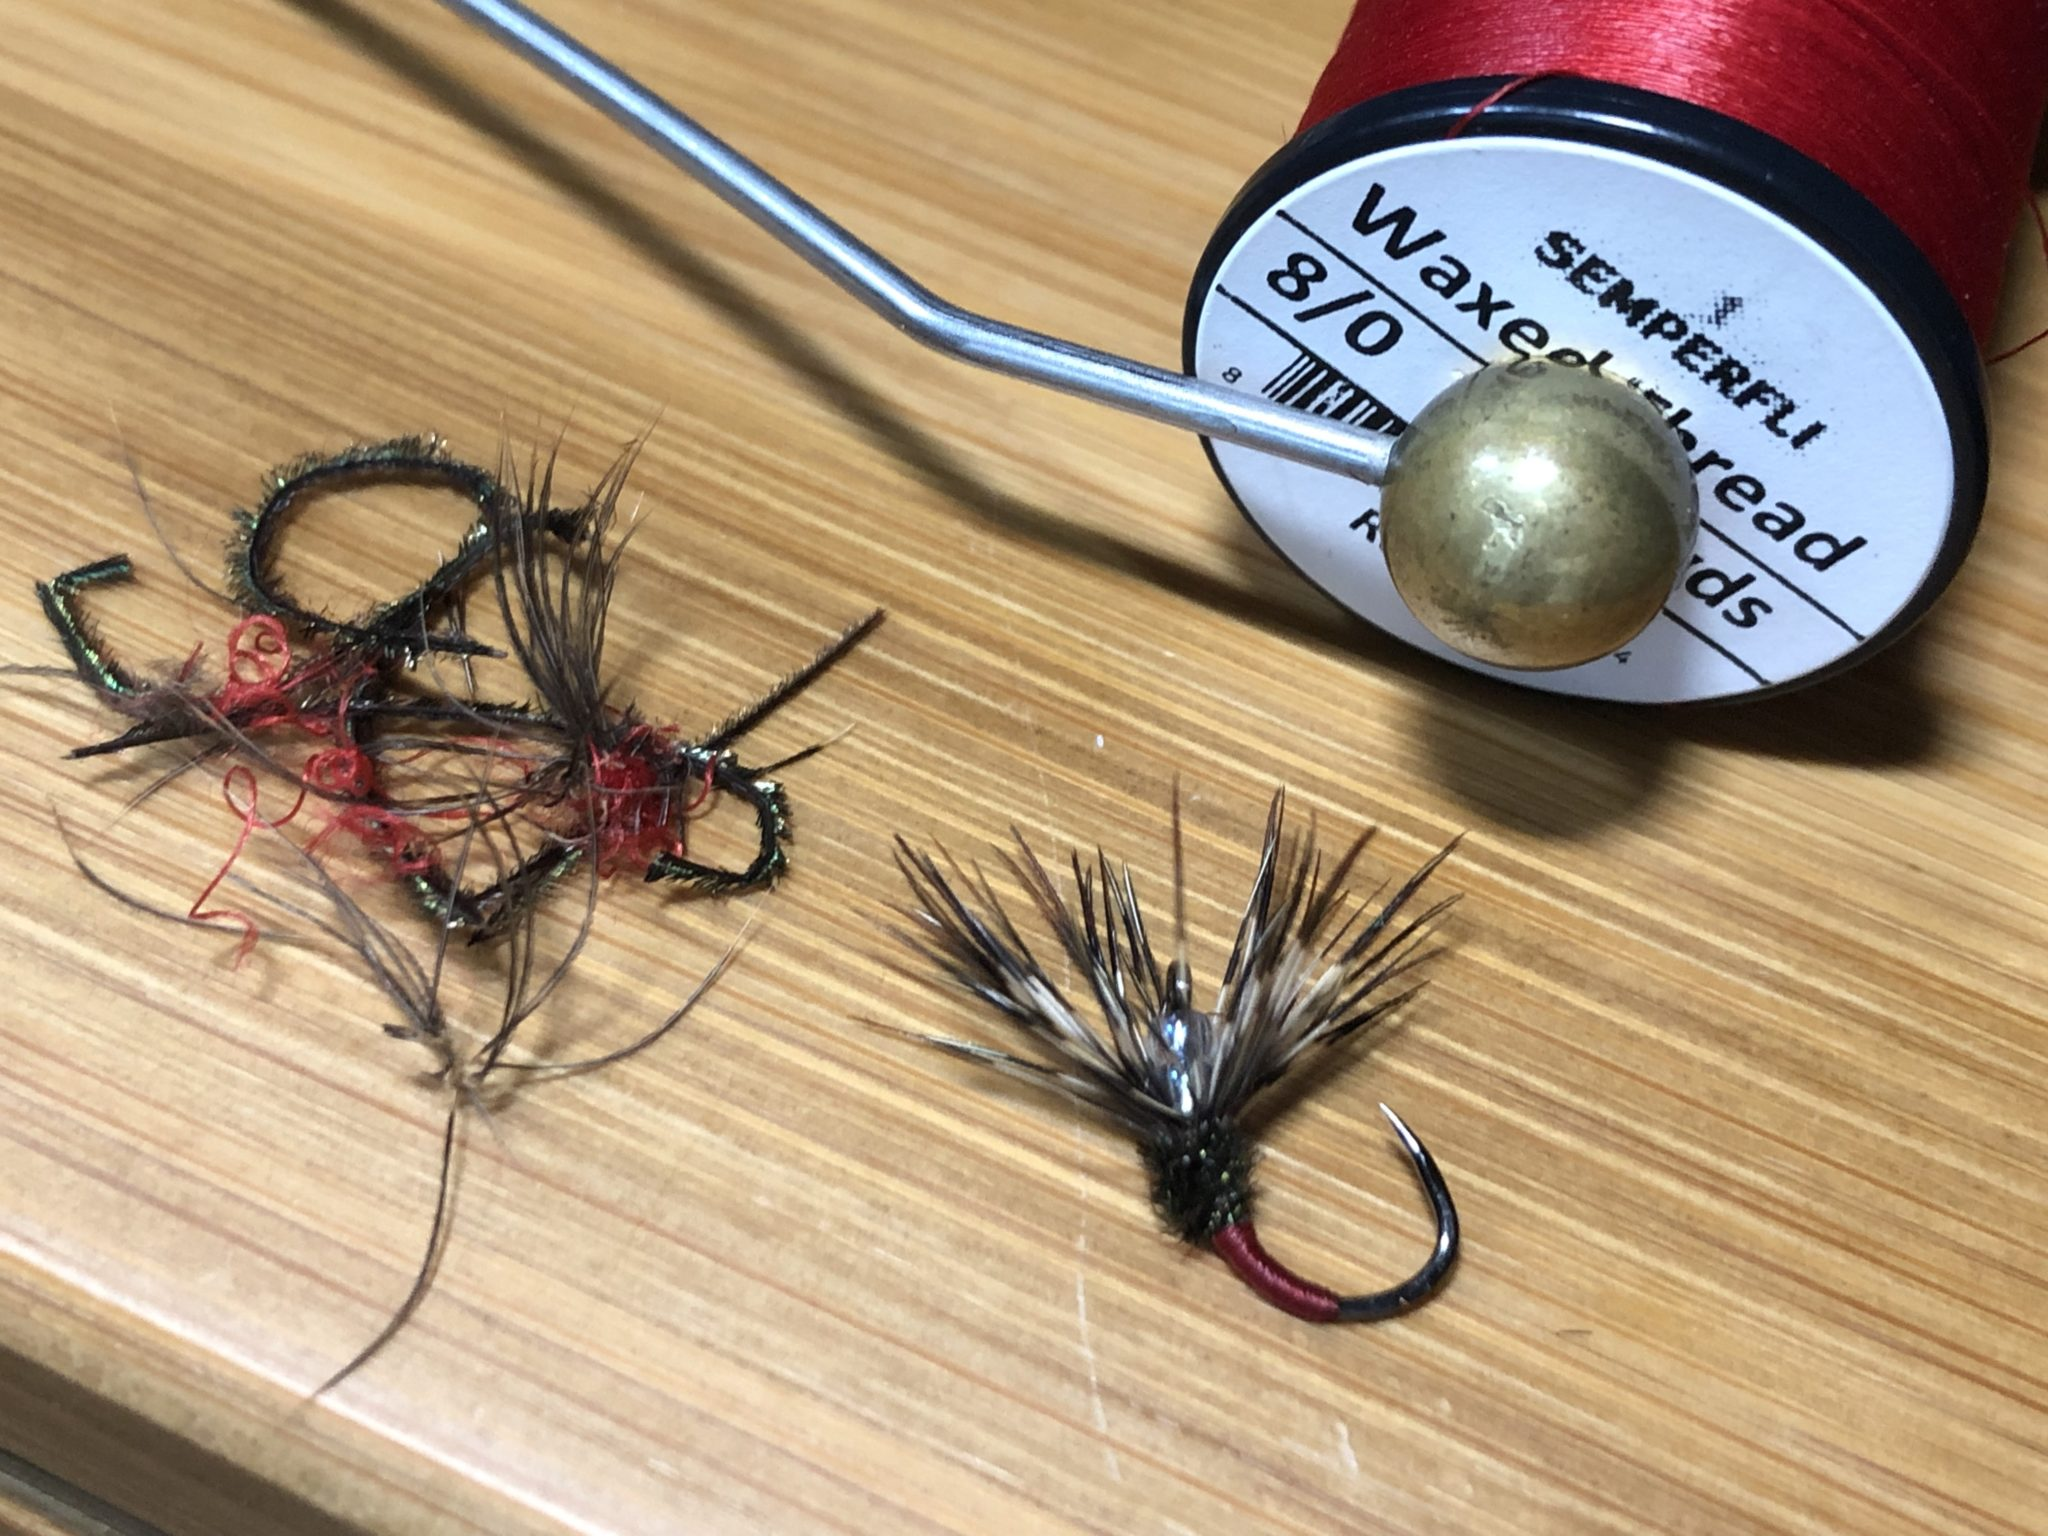 Reusing fly hooks